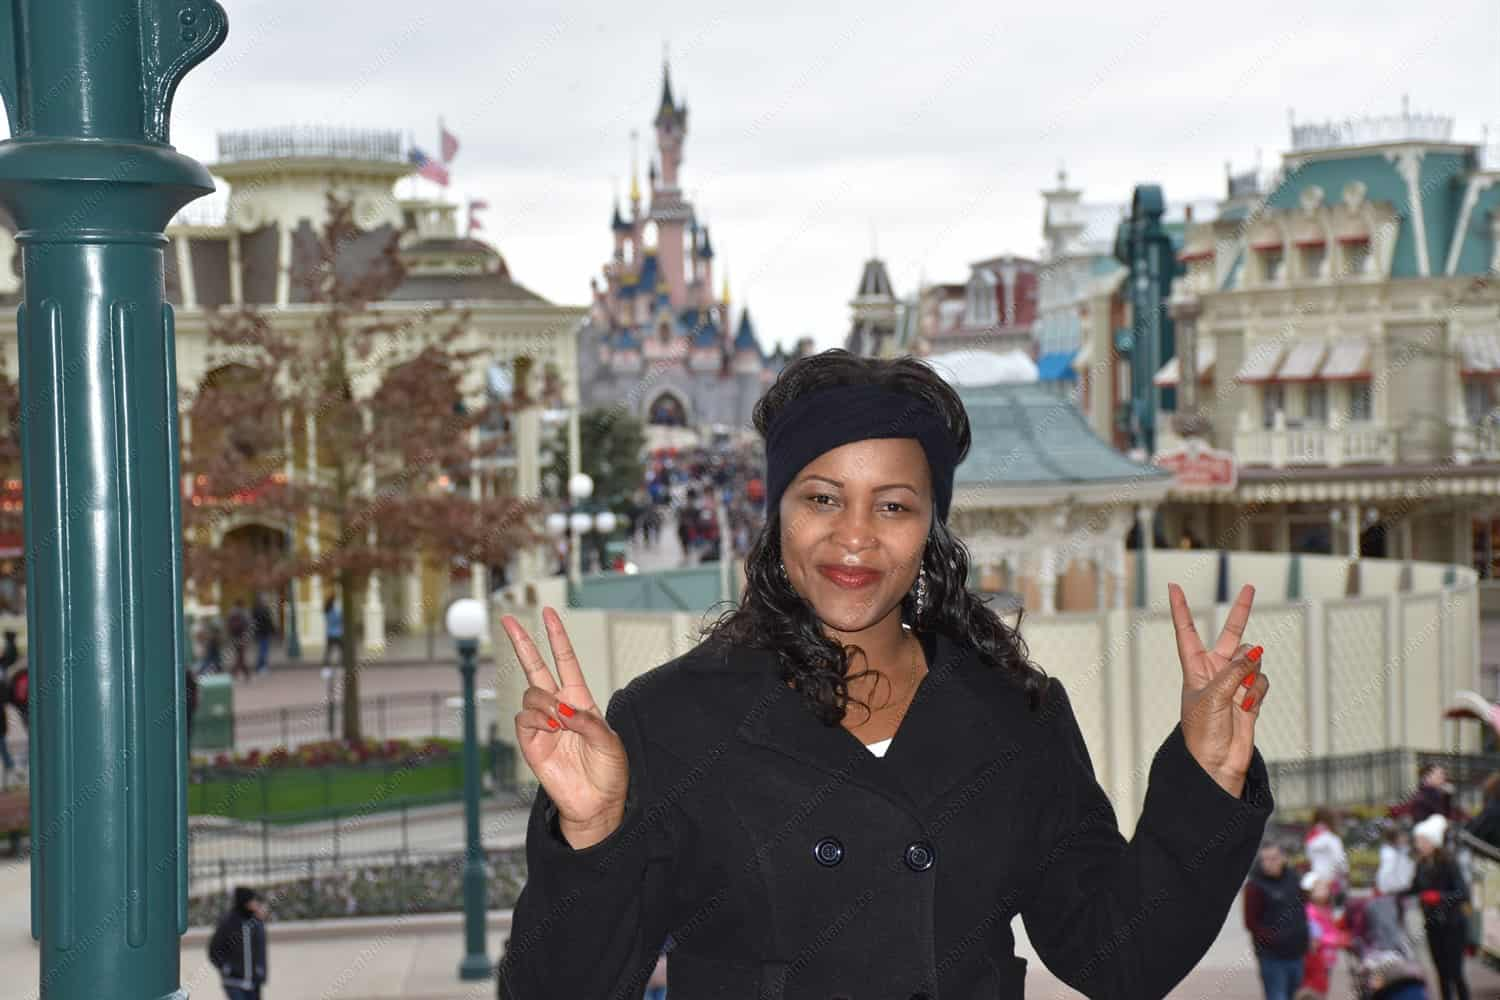 The Main Street USA In Disneyland Paris Experience